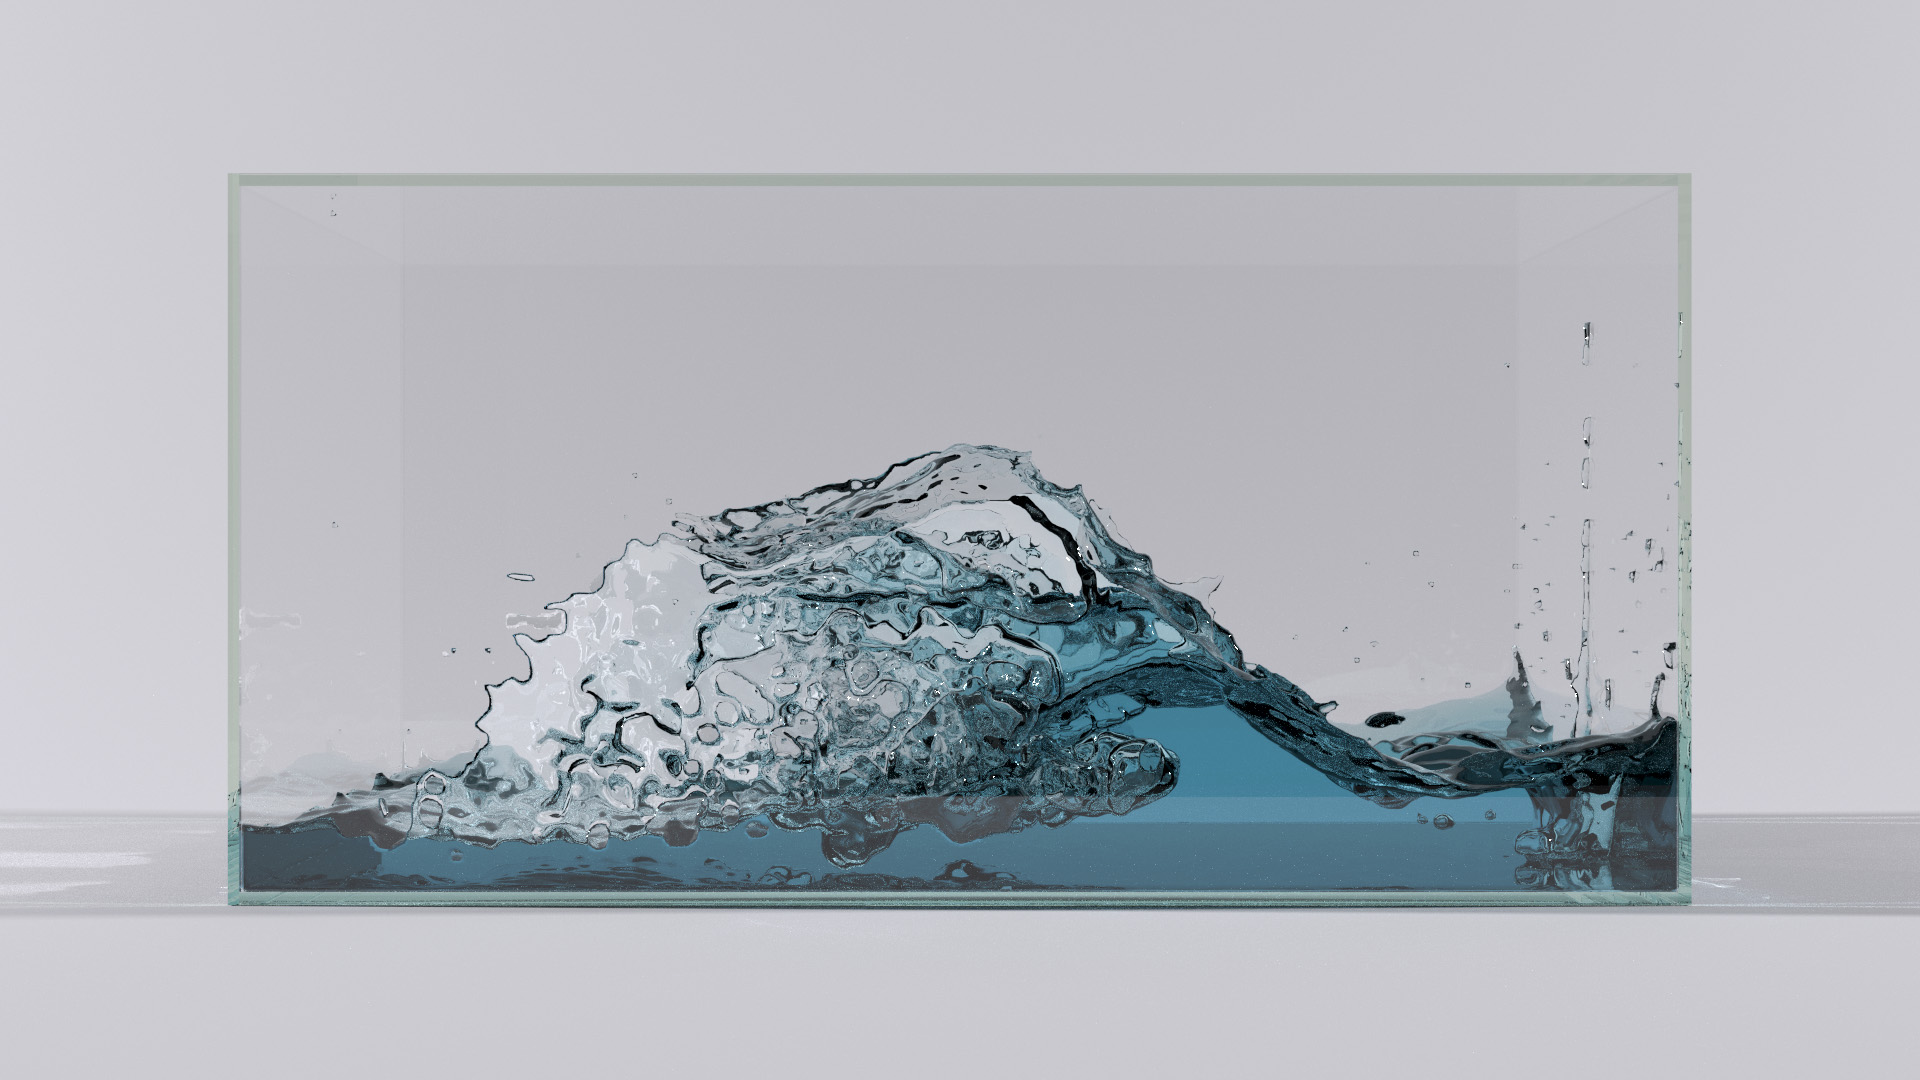 Blue liquid in a glass box, with attenuated transmission. Simulated using PIC/FLIP in Ariel, rendered in Takua a0.5 using VCM.